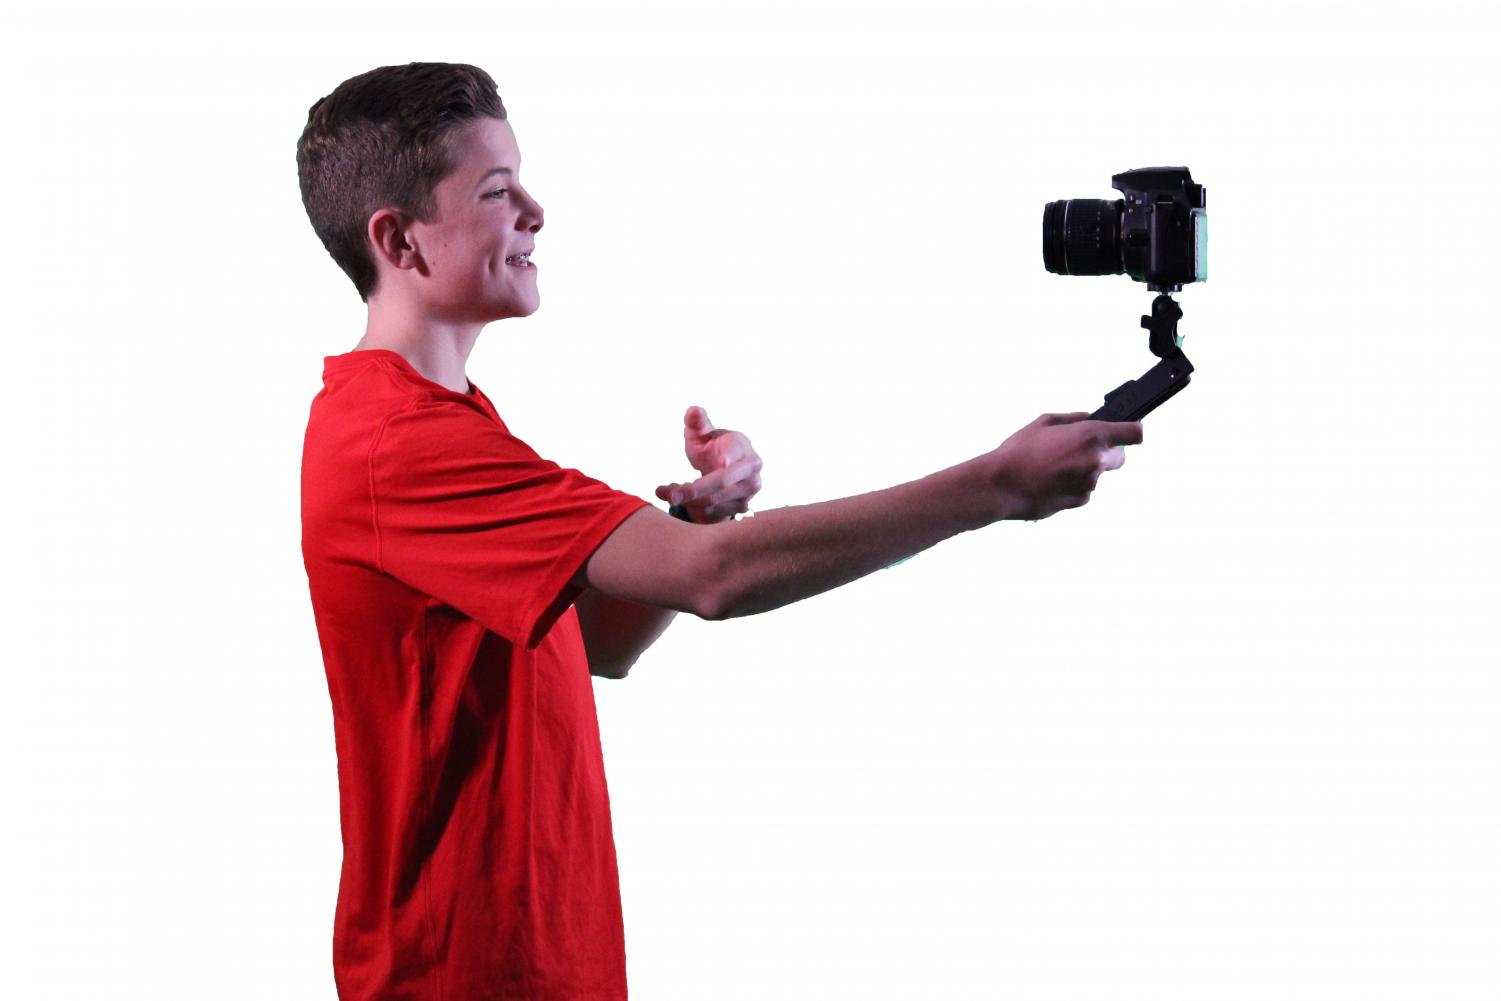 Parker Max is a YouTube sensation know for his vlog style videos